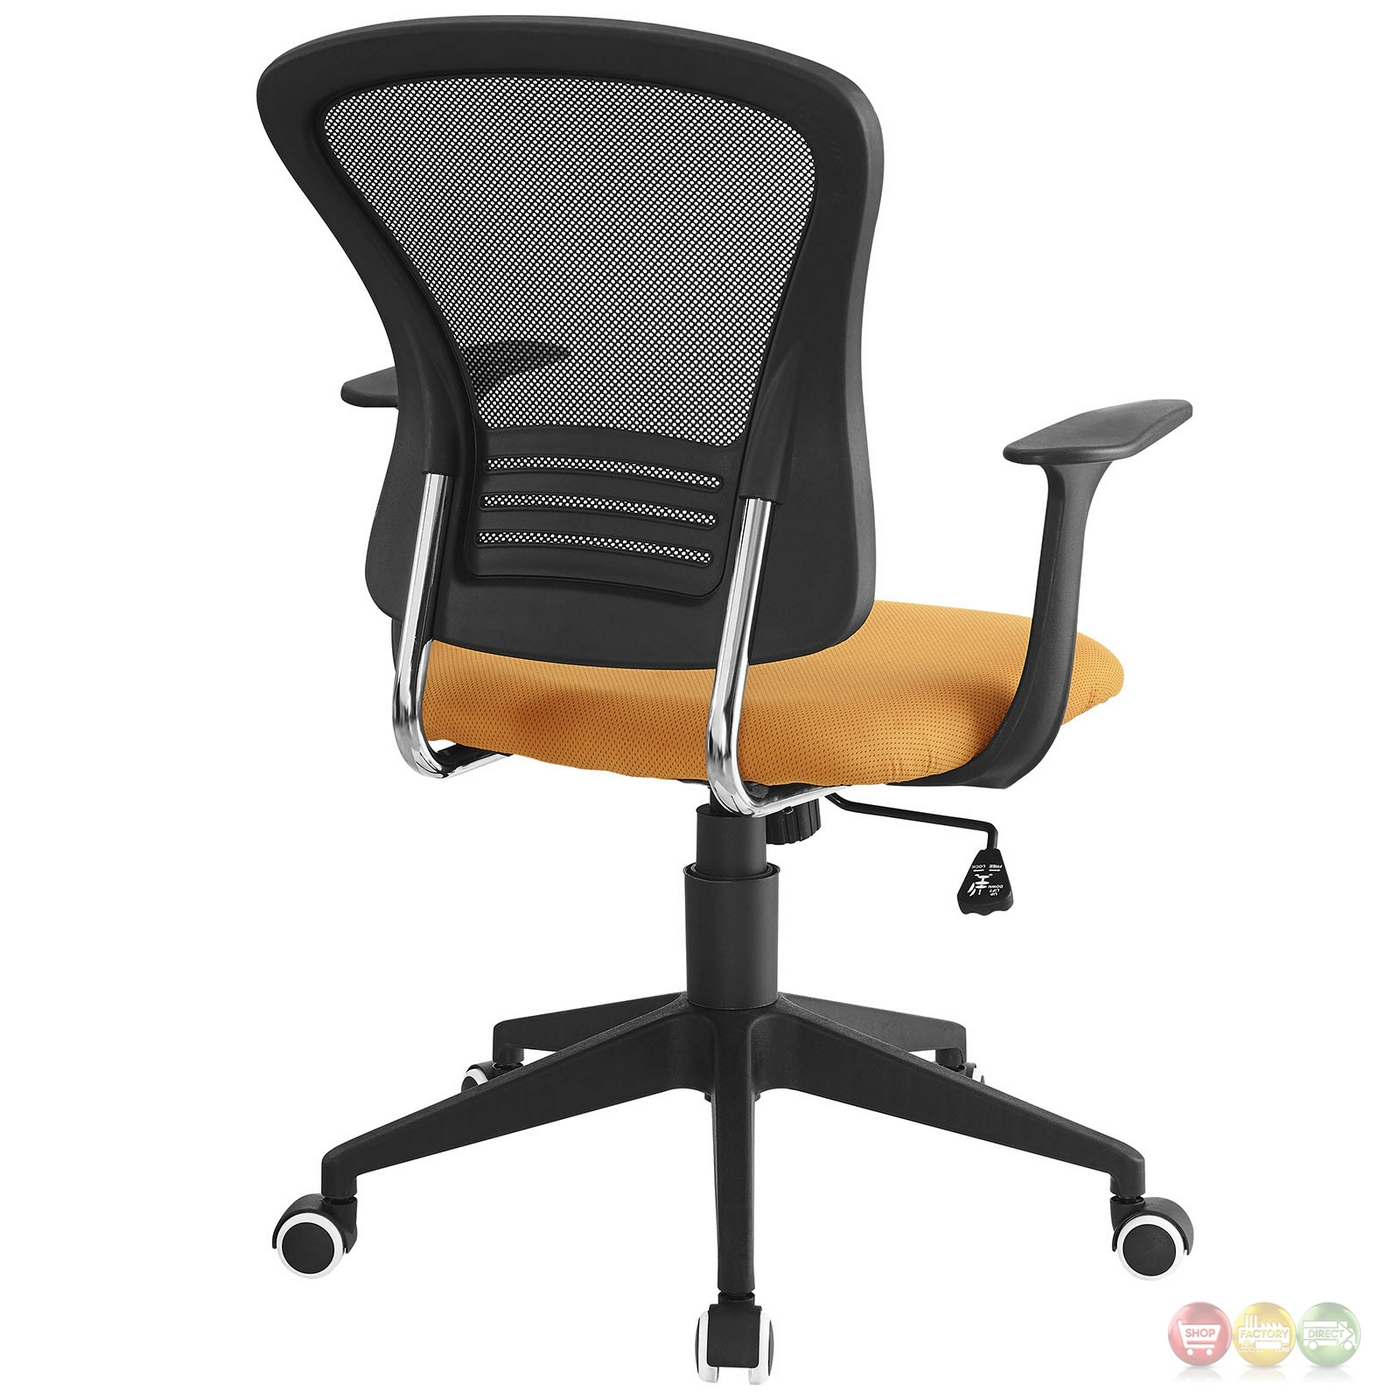 Back Support Chair Poise Modern Ergonomic Mesh Back Office Chair With Lumbar